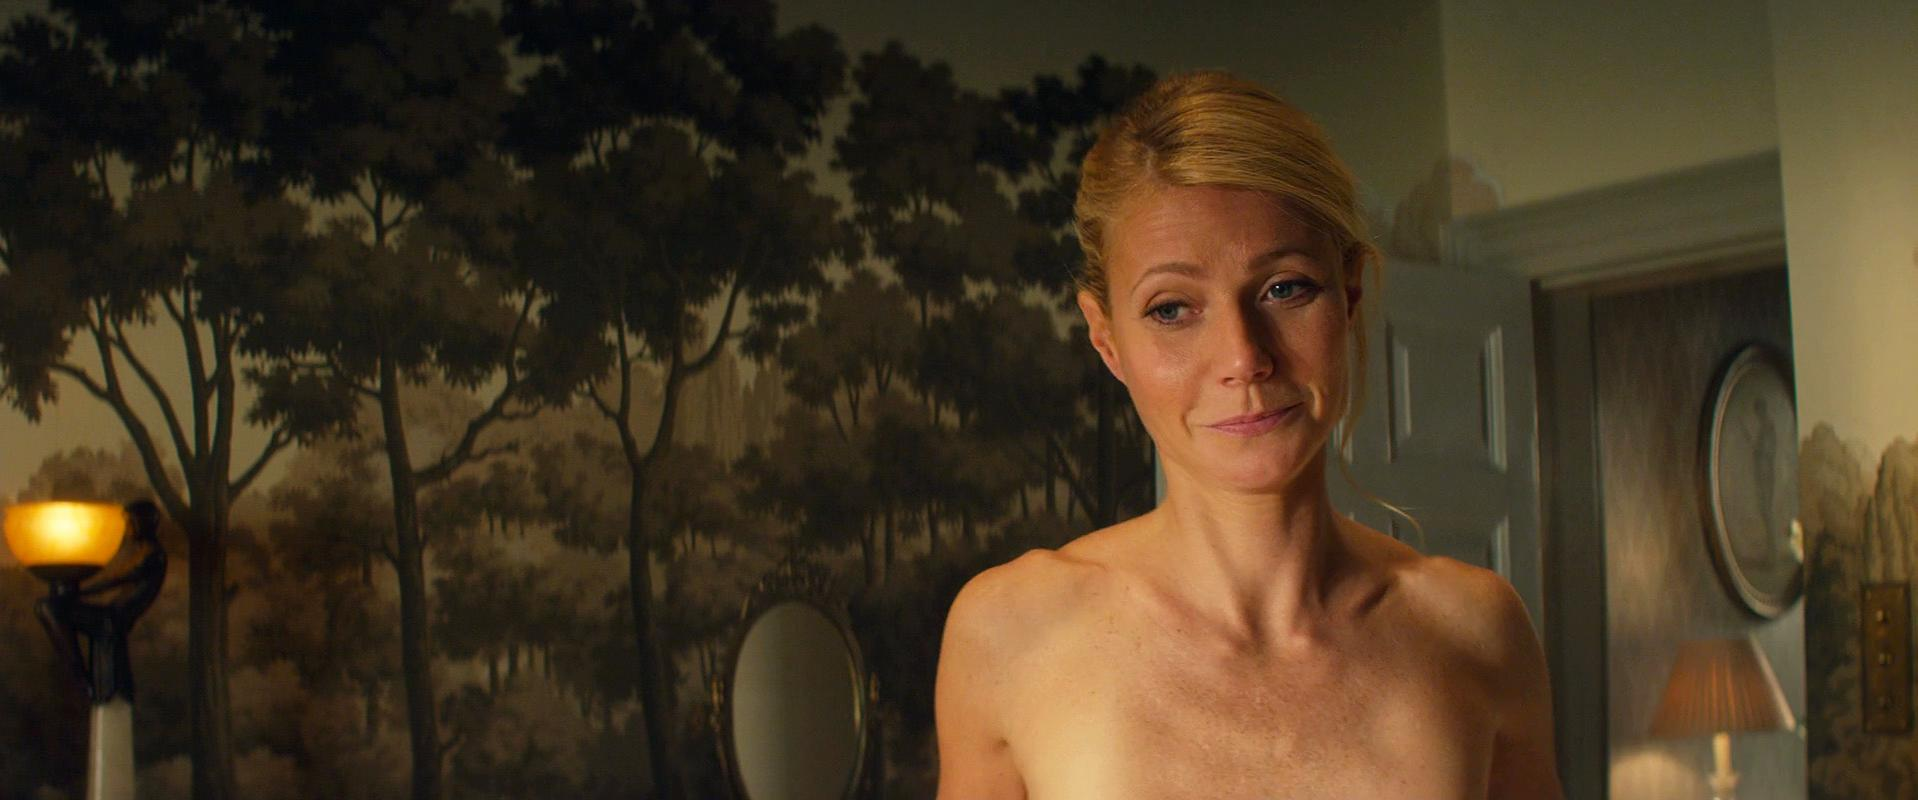 Gwyneth paltrow topless - 1 part 4